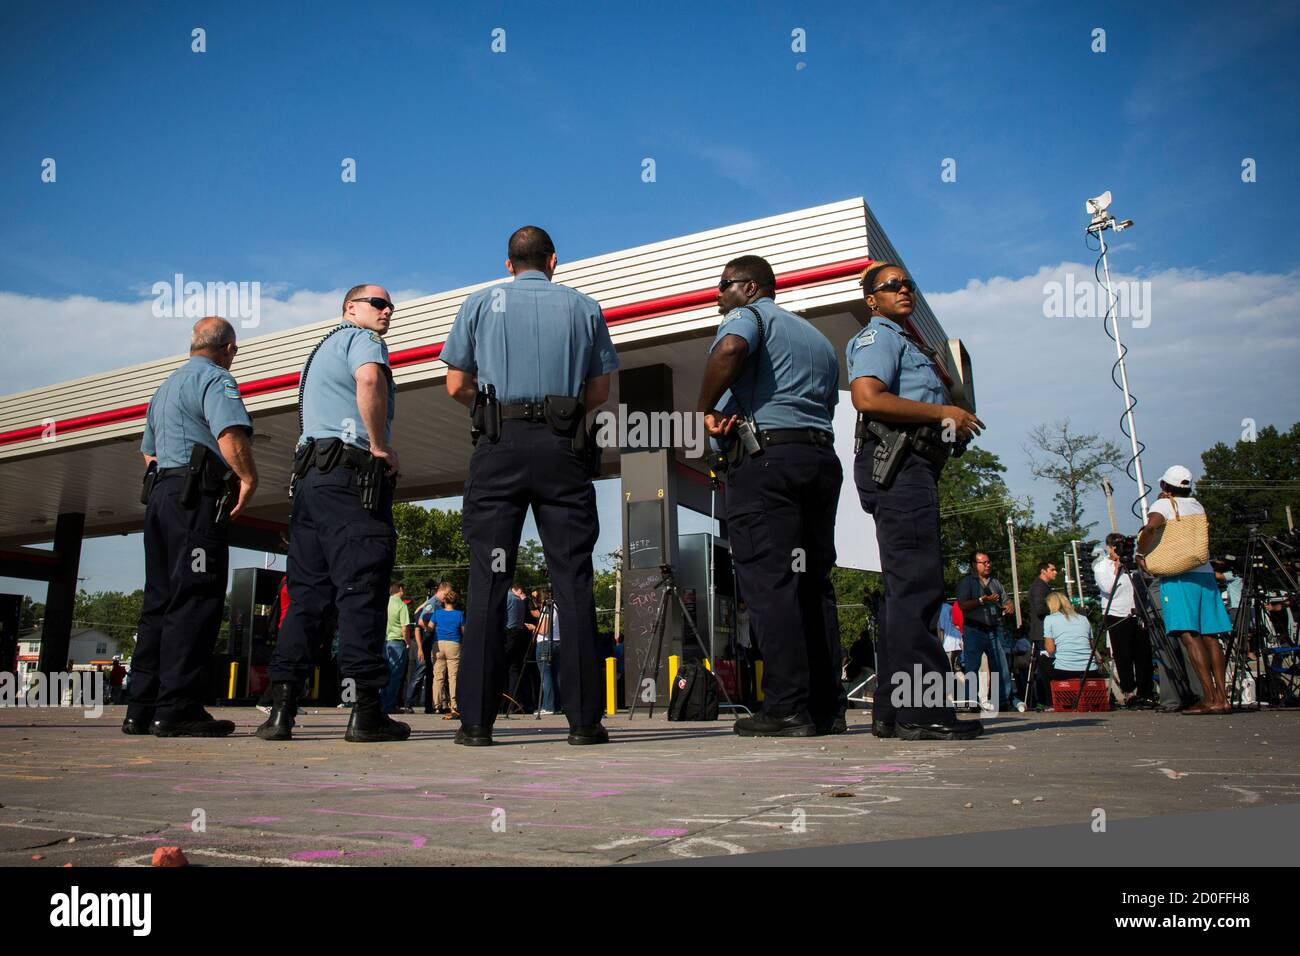 Police officers stand by after the announcement of the name of the officer involved in the shooting of Michael Brown in Ferguson, Missouri August 15, 2014. Police Chief Thomas Jackson on Friday identified Darren Wilson as the police officer who fatally shoot an unarmed black teenager, which led to days of sometimes-violent demonstrations. Jackson announced the name at a press conference held near a QuikTrip convenience store that had been burned amid protests over the shooting of Brown, 18, last Saturday.  REUTERS/Lucas Jackson (UNITED STATES - Tags: CIVIL UNREST CRIME LAW) Banque D'Images